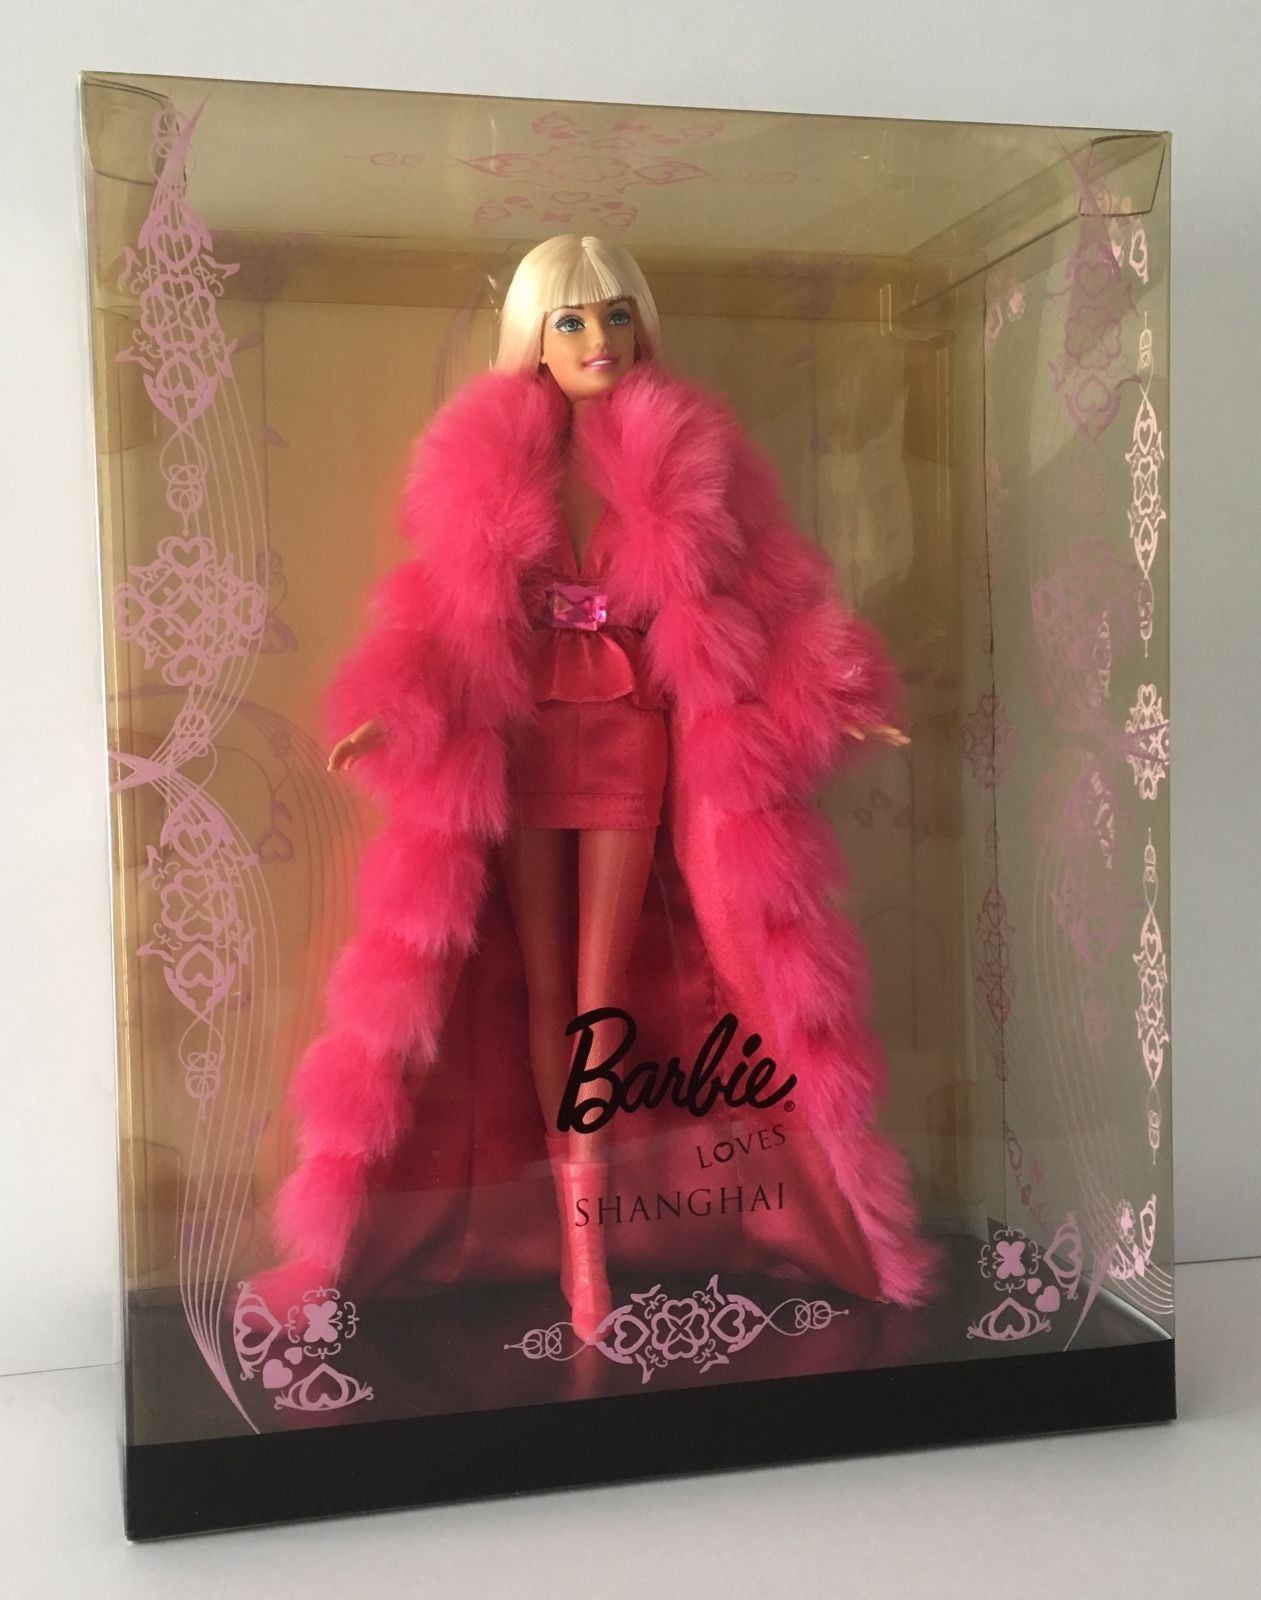 BARBIE Loves Shanghai RARE Collector Pink Fur Coat NIB 2009